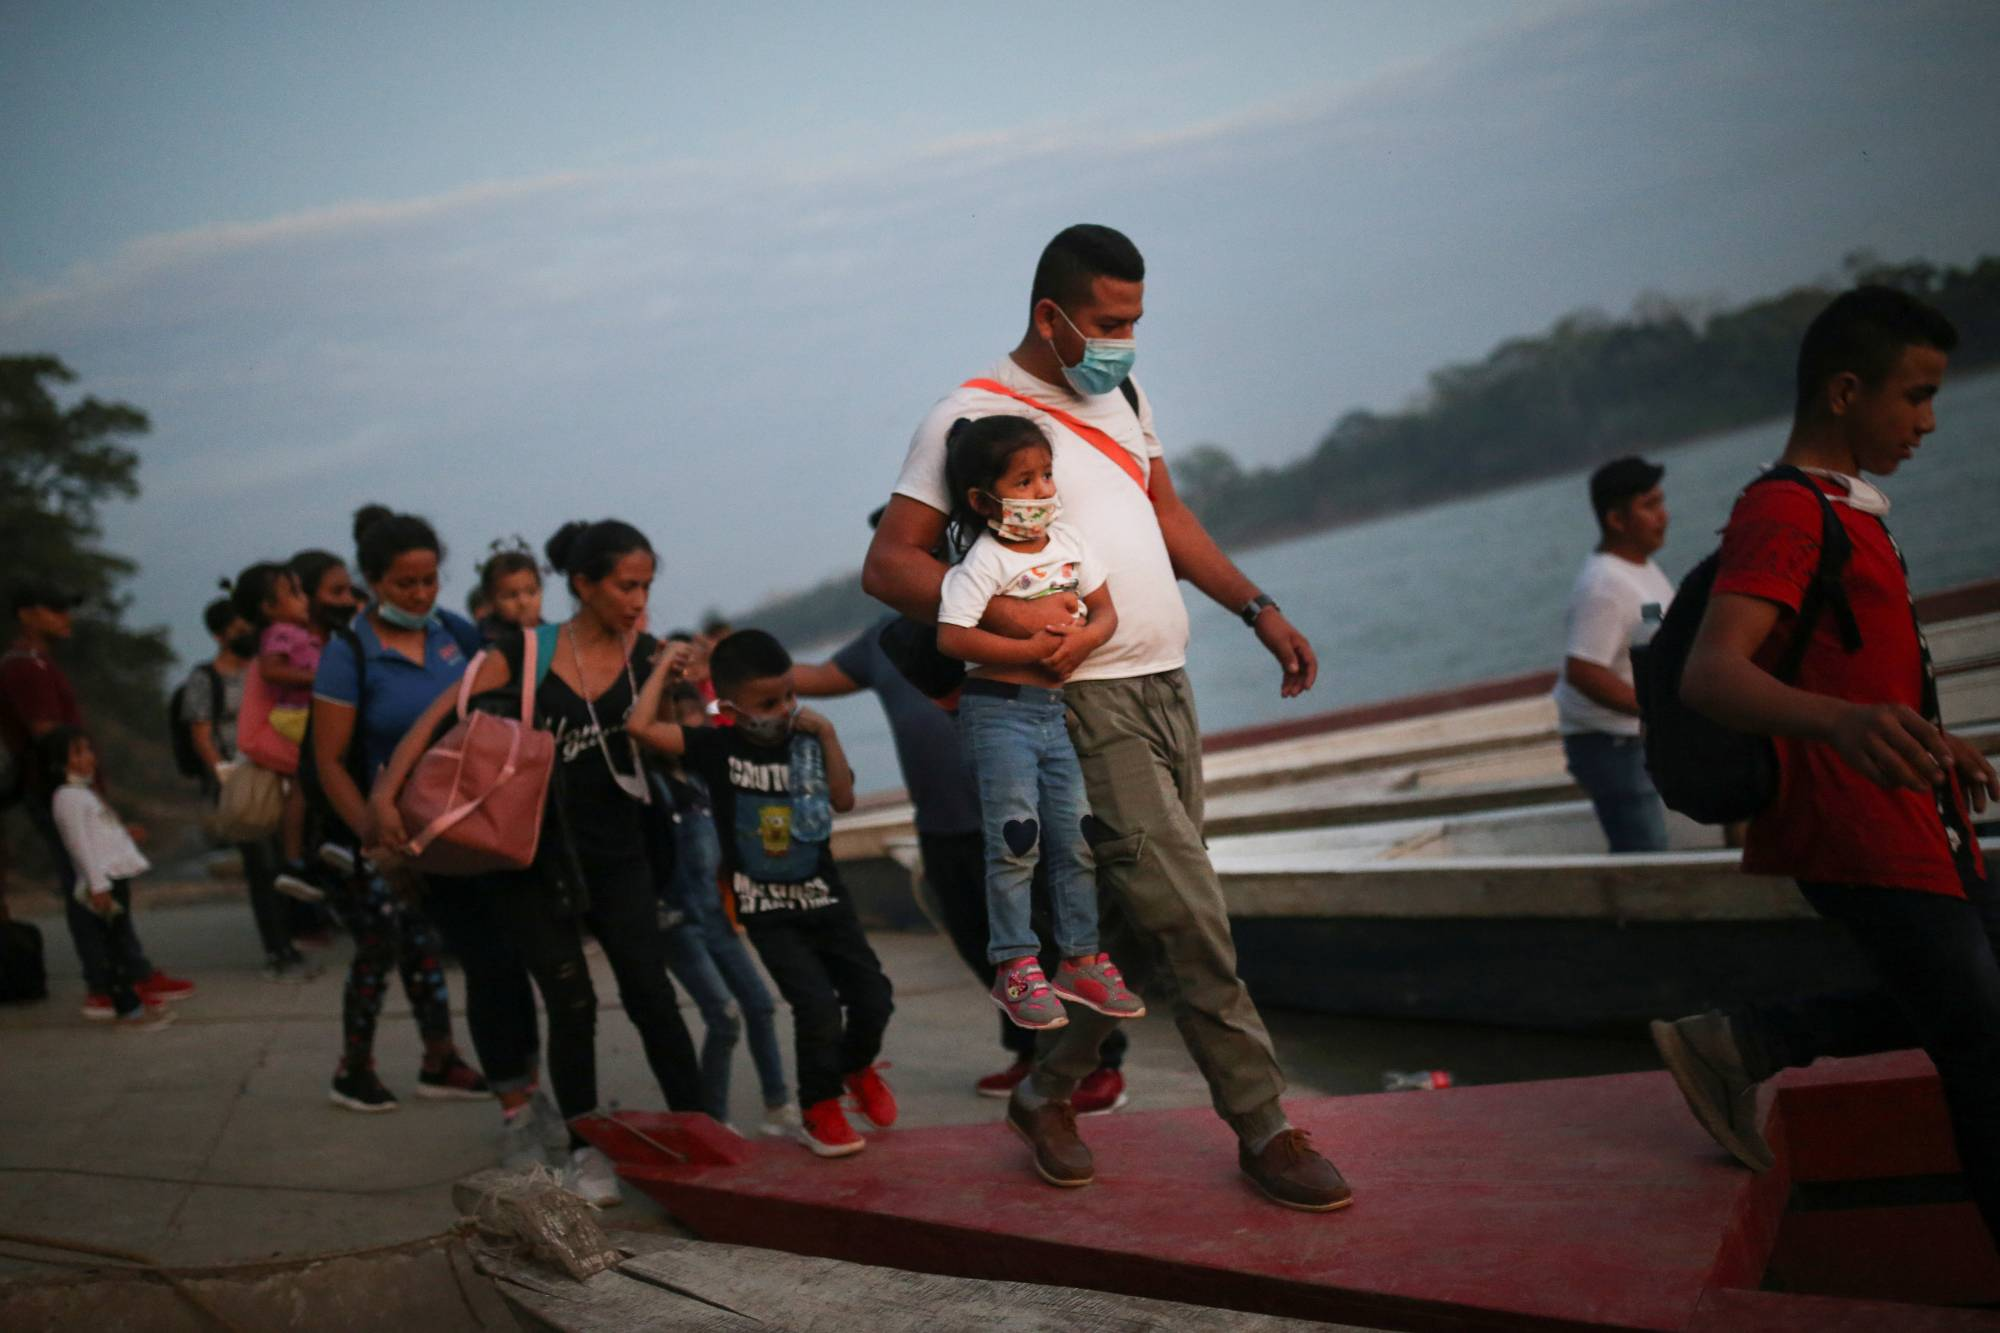 Honduran migrant families trying to reach the U.S. get on boats to cross the Usumacinta river, at La Tecnica in the Lacandon jungle of Guatemala on March 6.  | REUTERS